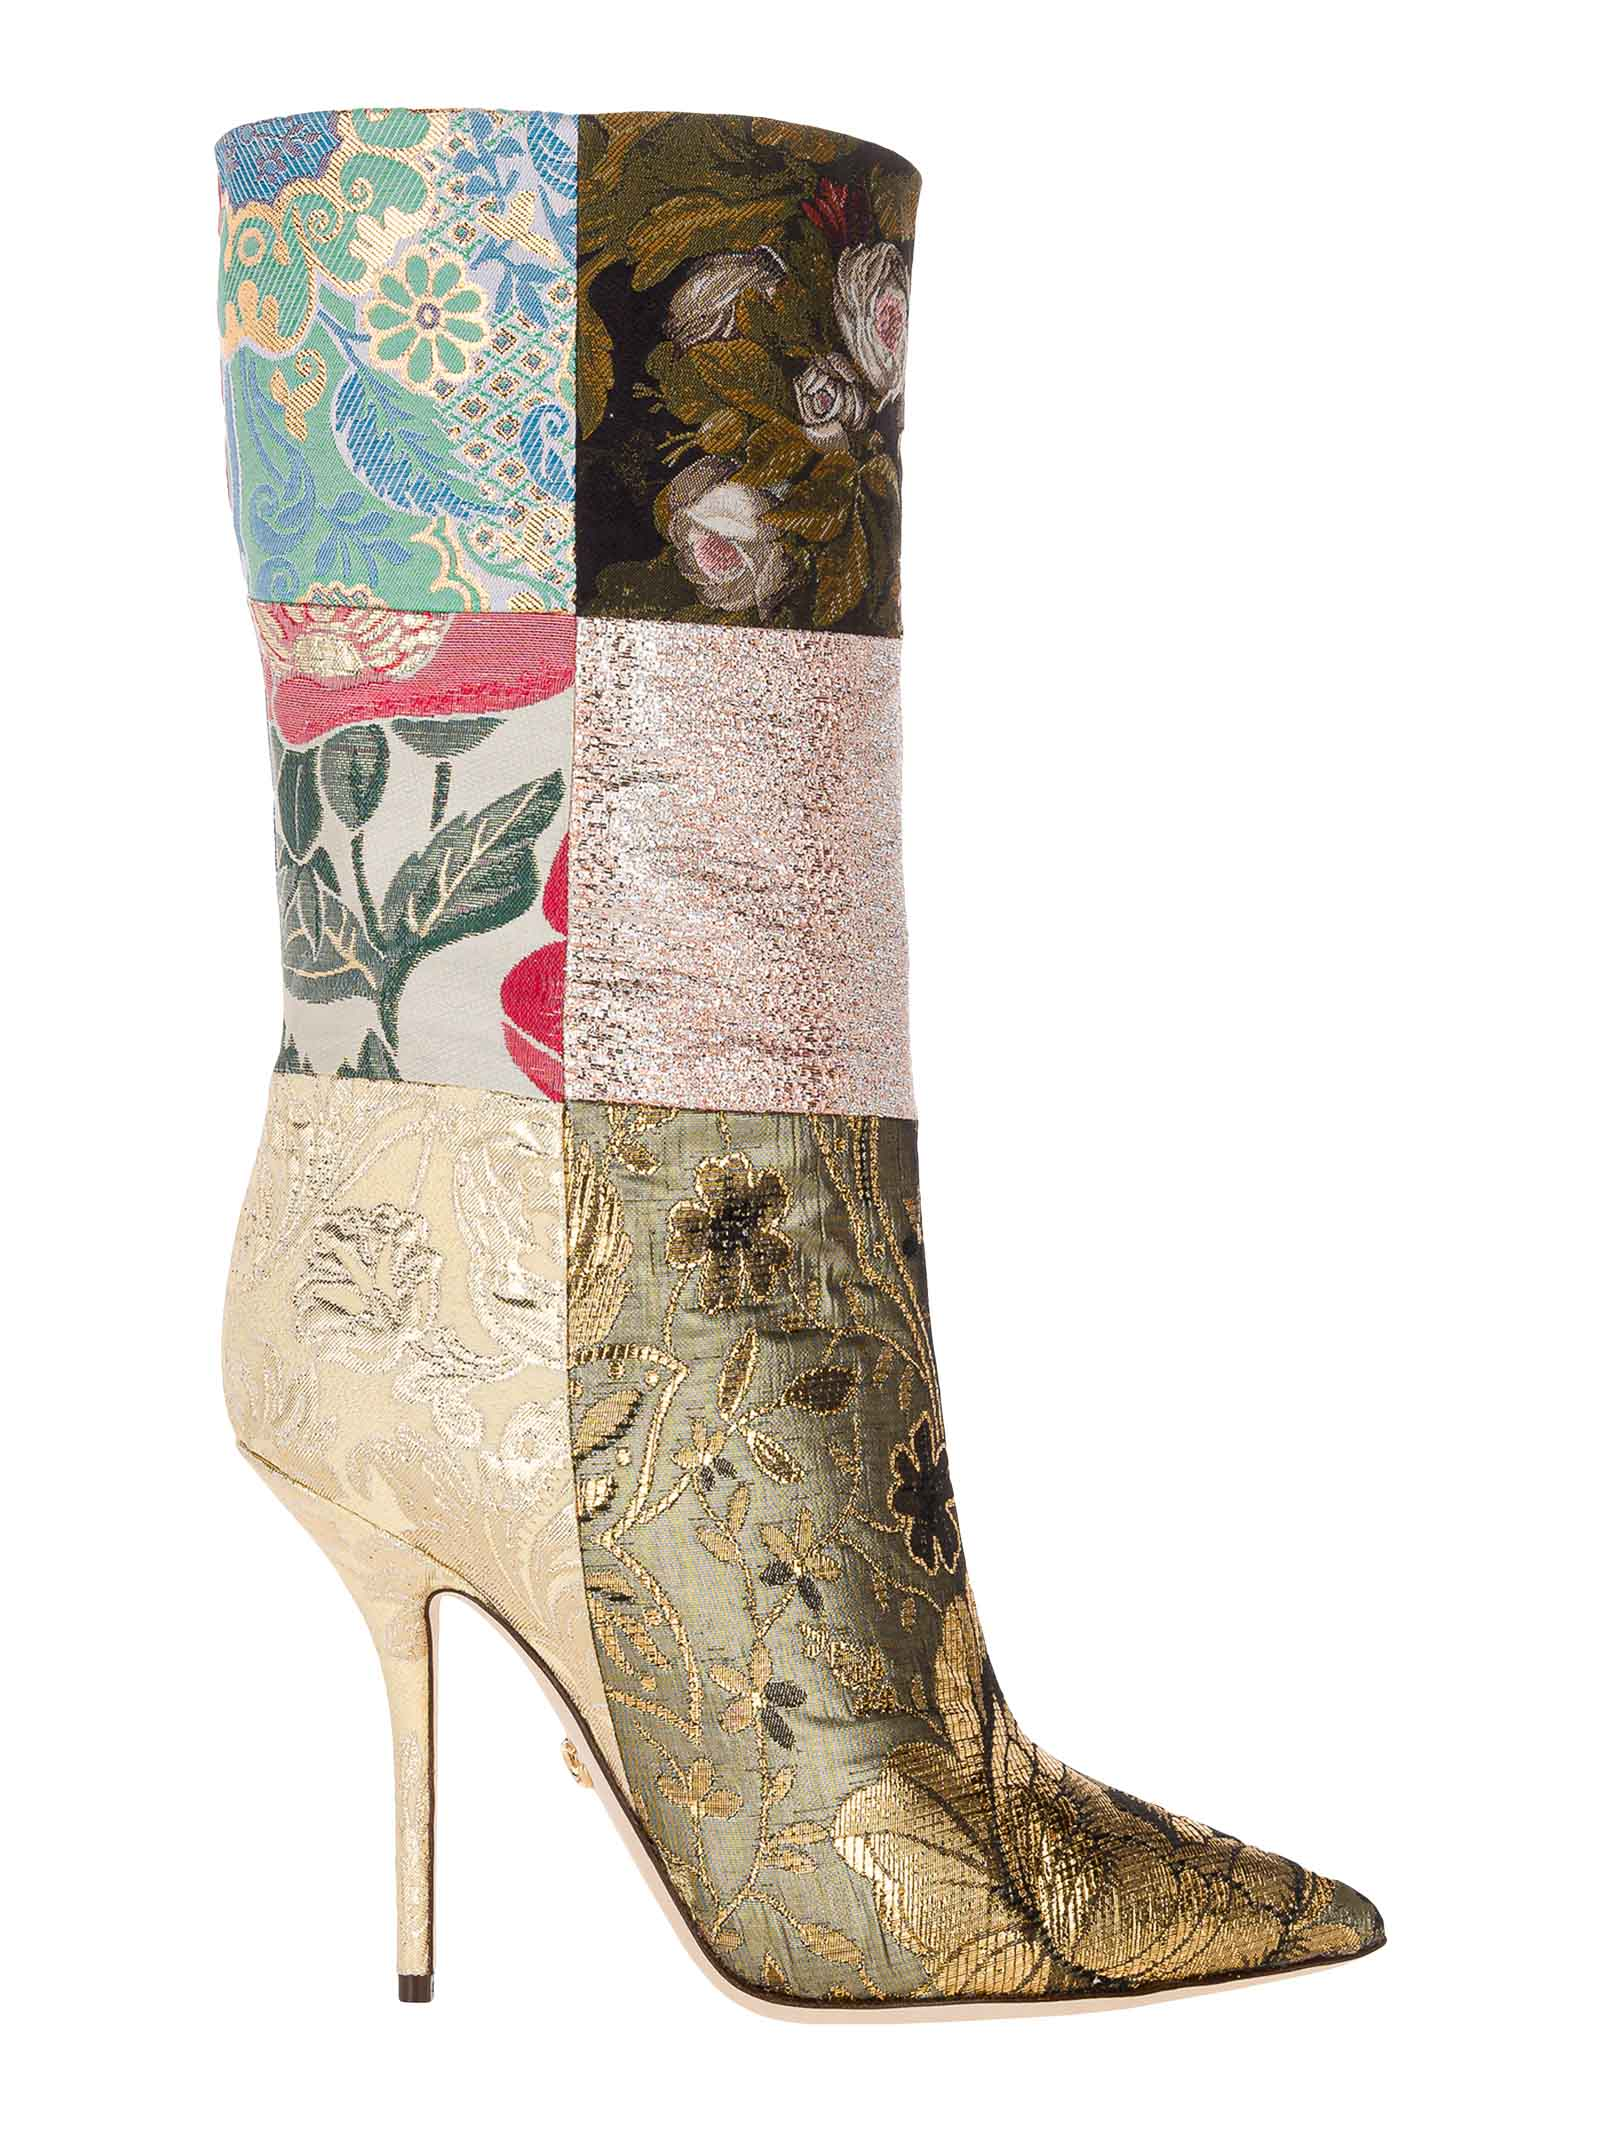 Buy Dolce & Gabbana Dolce & gabbana Patchwork Fabric Ankle Boots online, shop Dolce & Gabbana shoes with free shipping